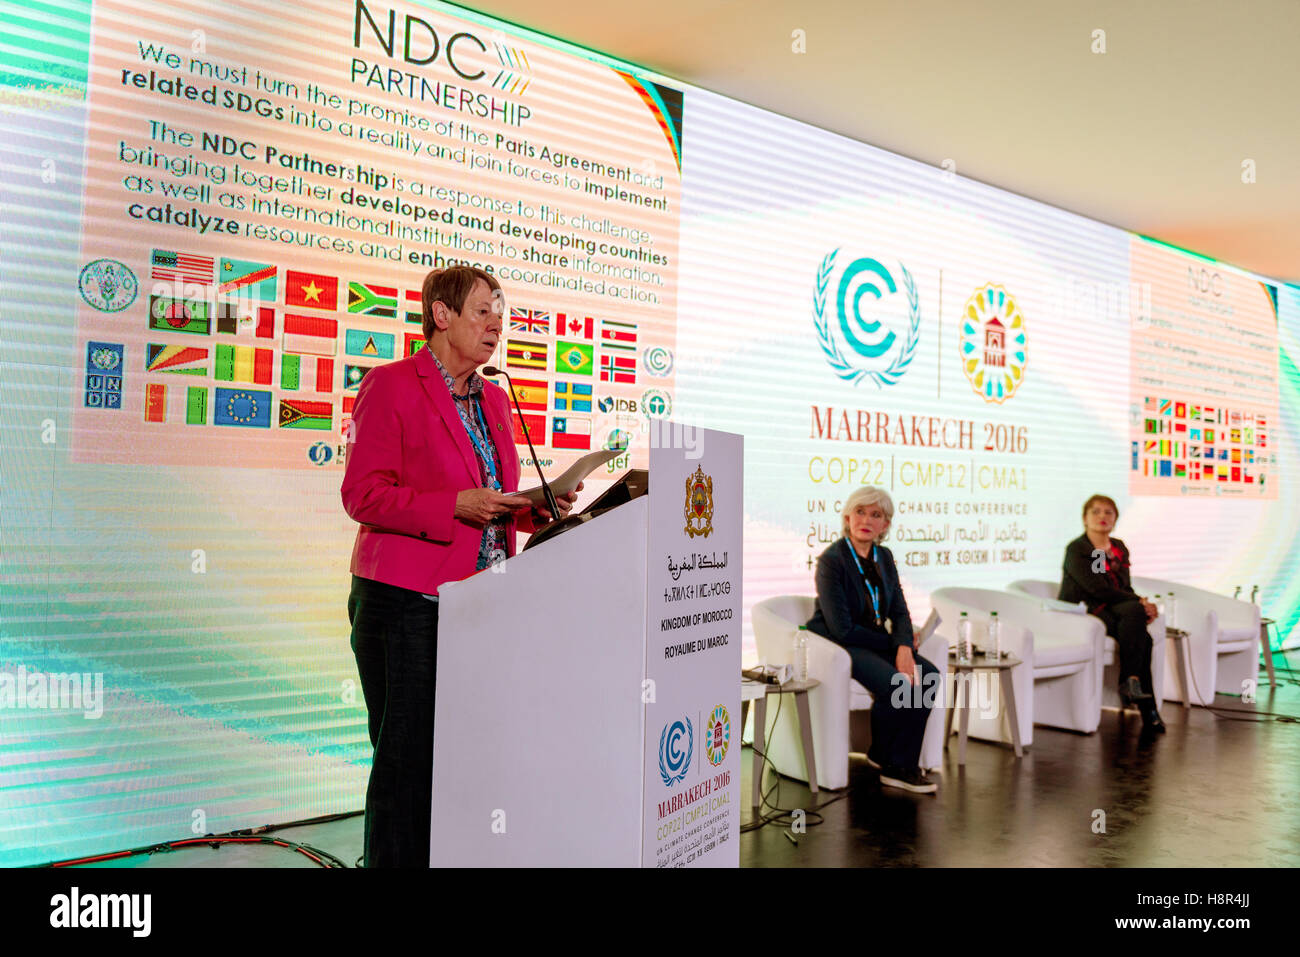 Marrakech, Morocco. 15th Nov, 2016. The German Federal Minister of the Environment Barbara Hendricks speaks at the Stock Photo